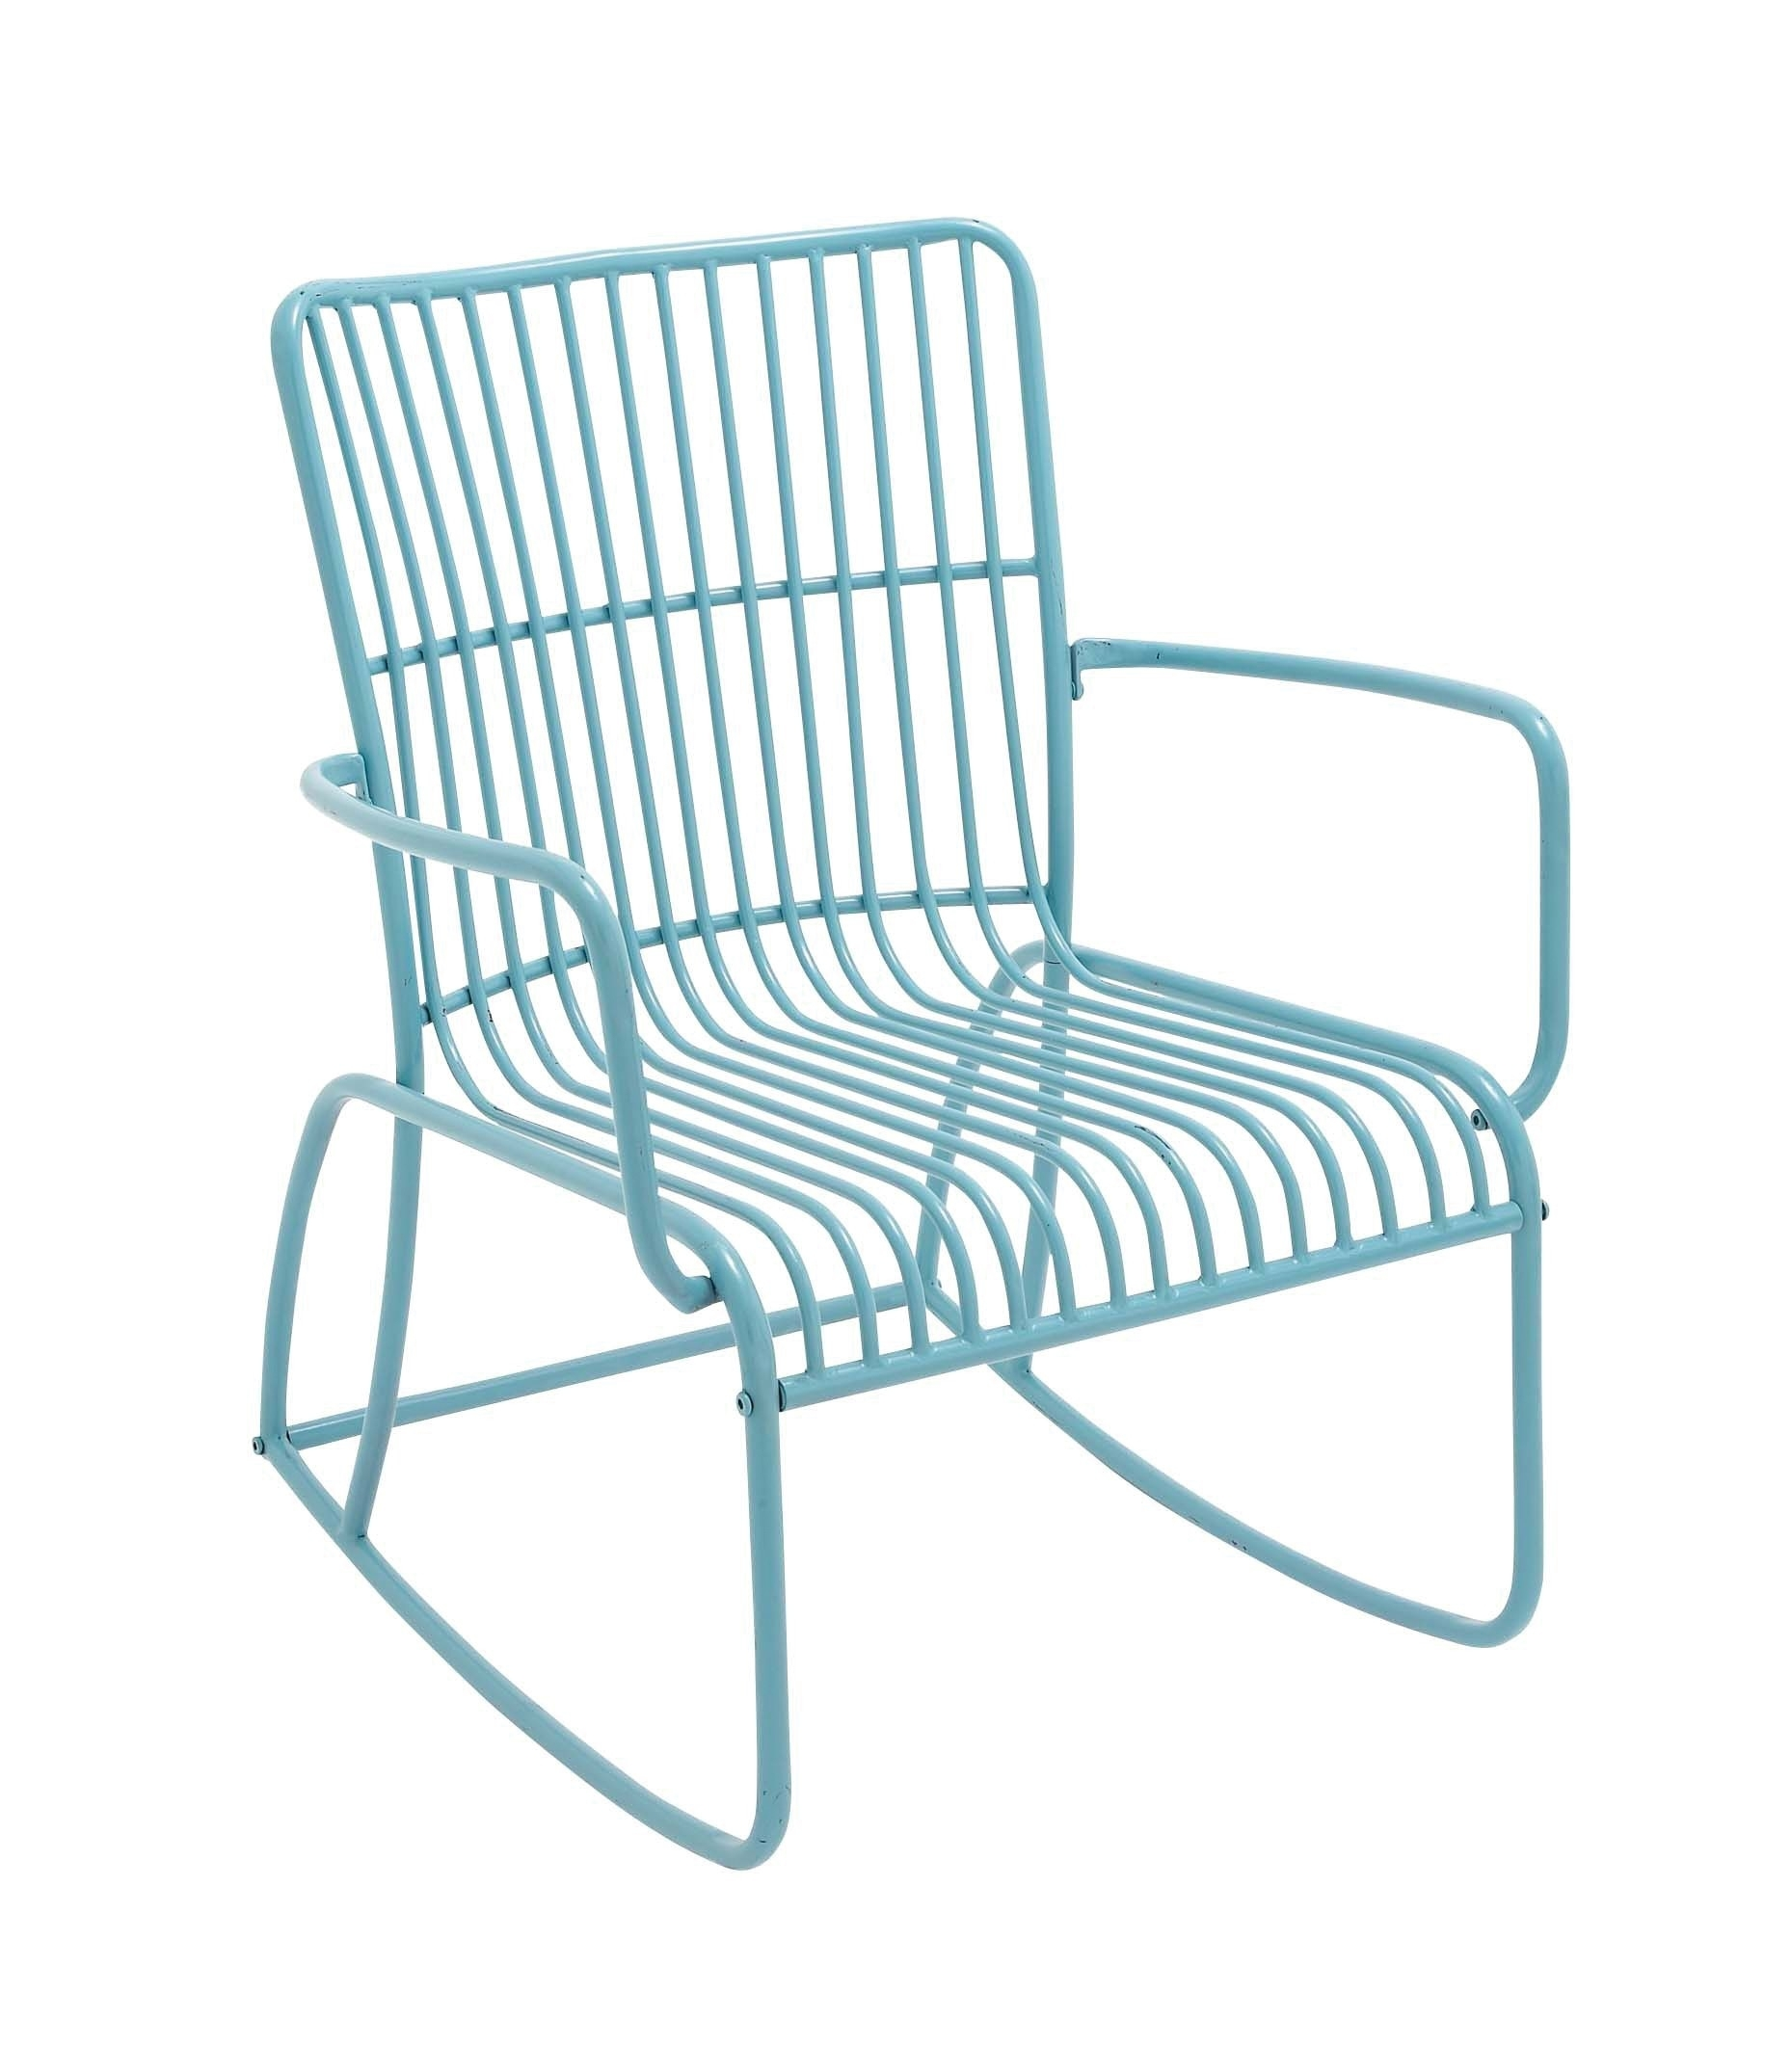 Metal Outdoor Rocking Chair With Regard To Vintage Metal Rocking Patio Chairs (View 12 of 15)